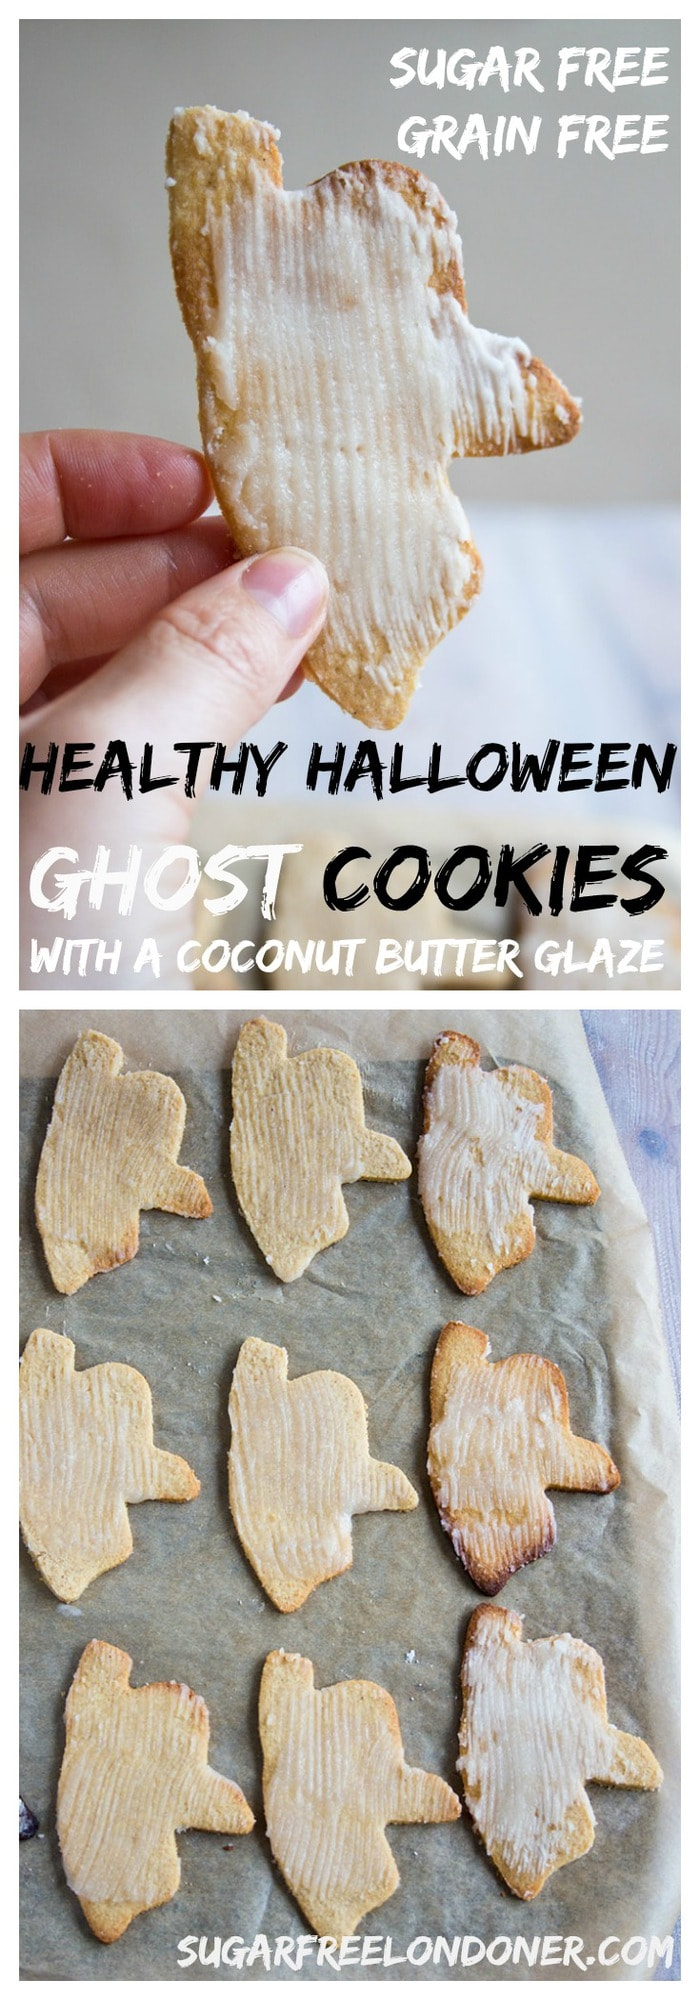 You'd like to have seconds? No problem. These crunchy sugar free cut out cookies with a coconut butter glaze are low carb, gluten free and sweetened with erythritol.